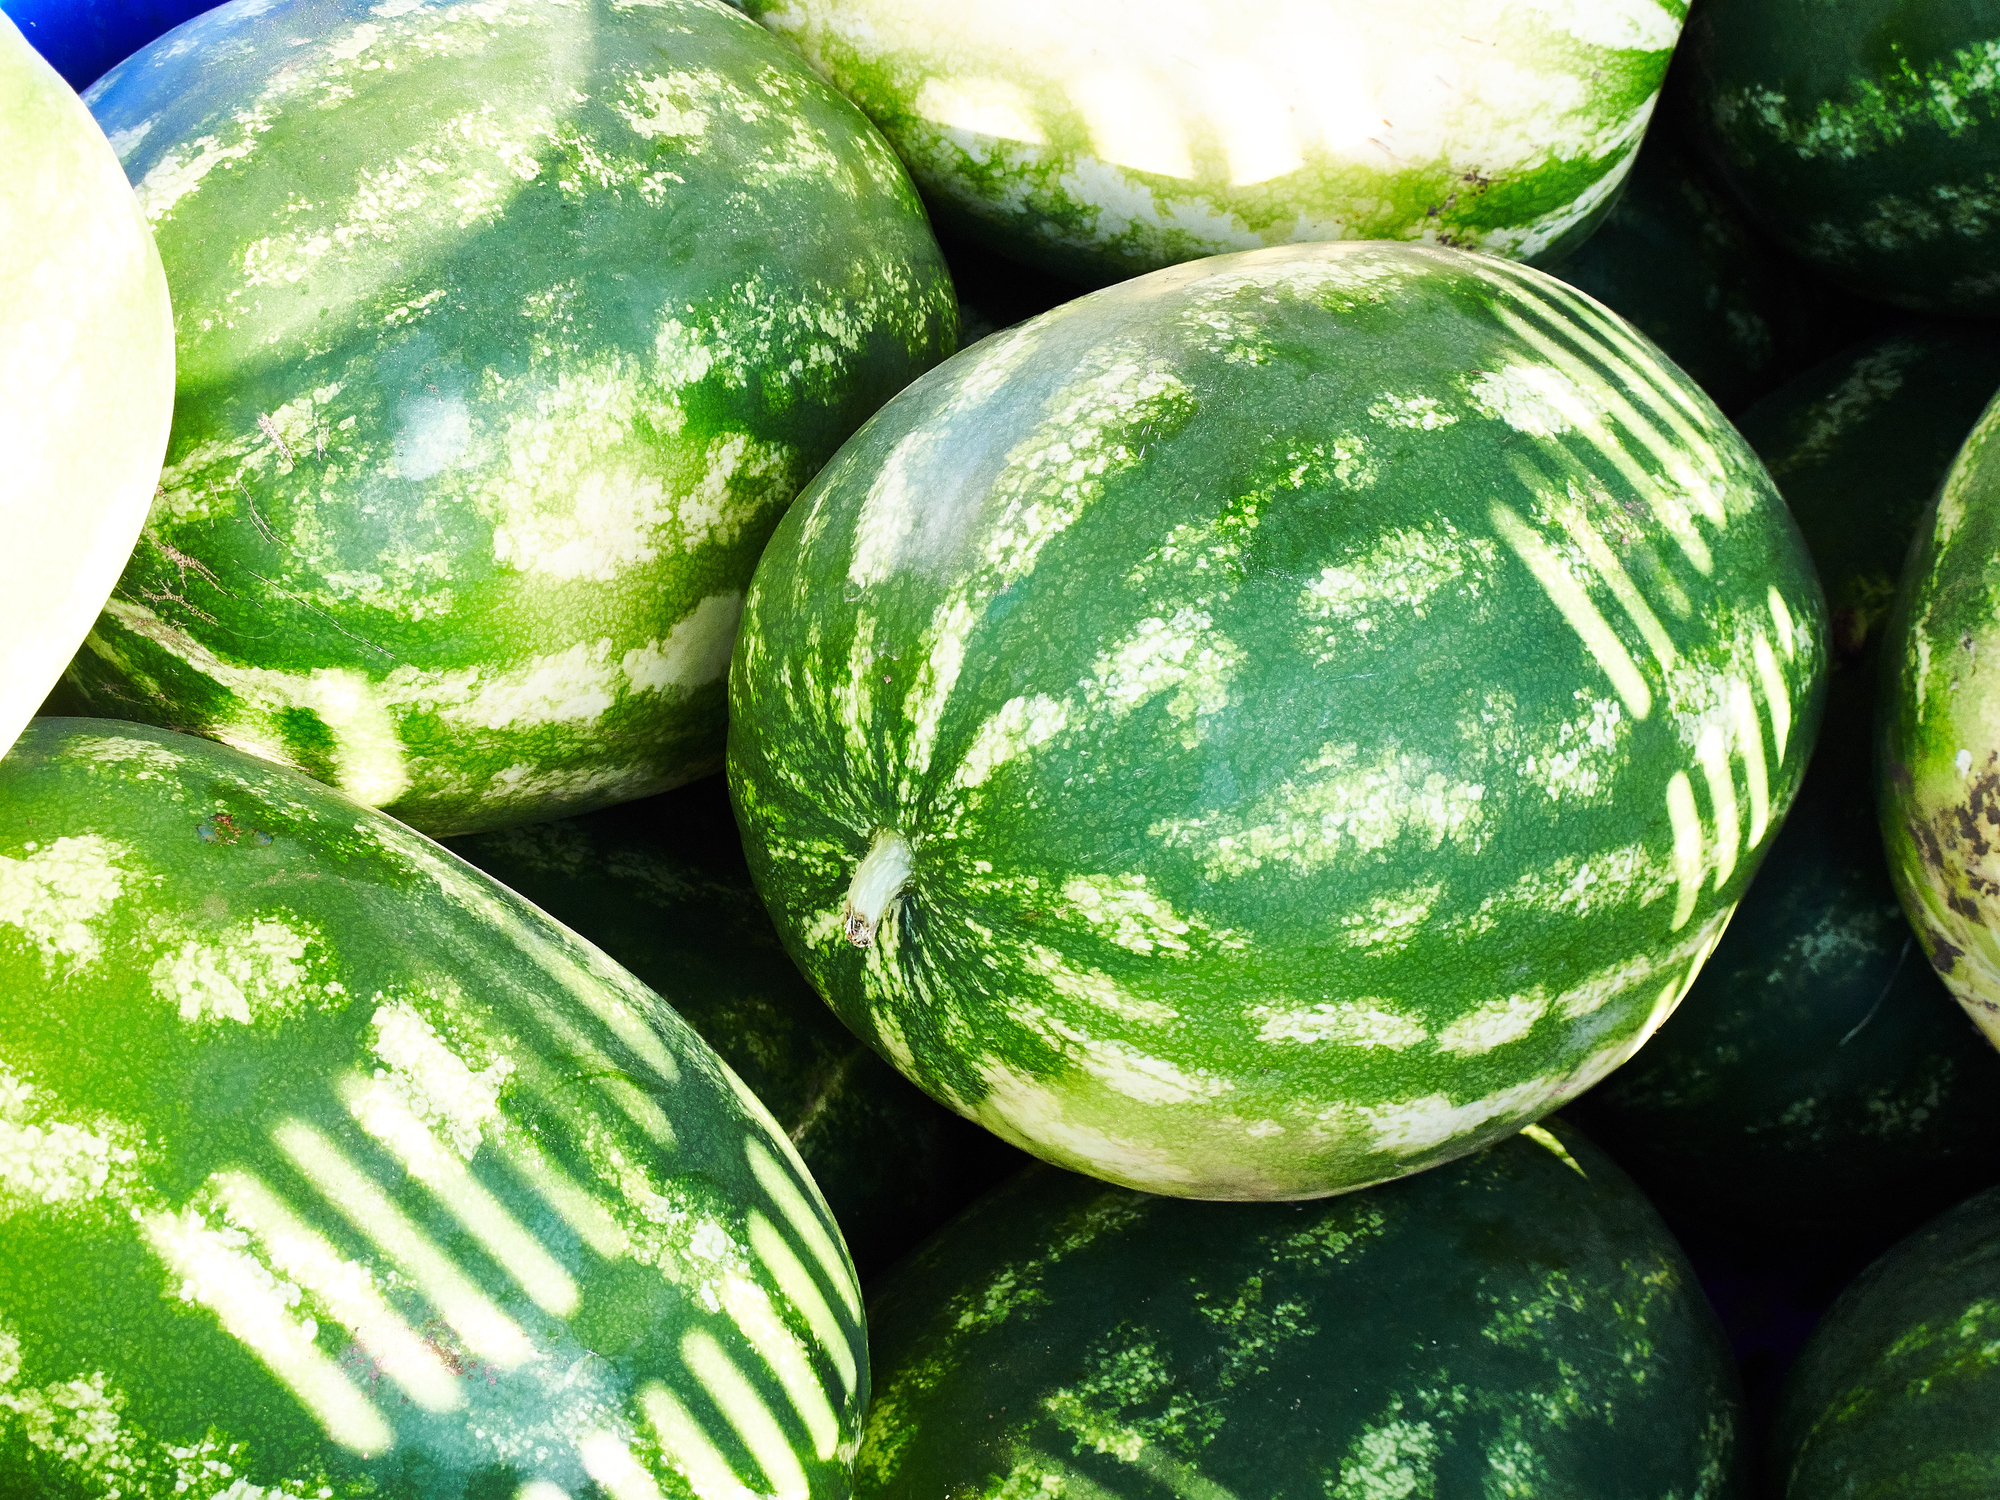 Close-Up Of Watermelons For Sale At Market